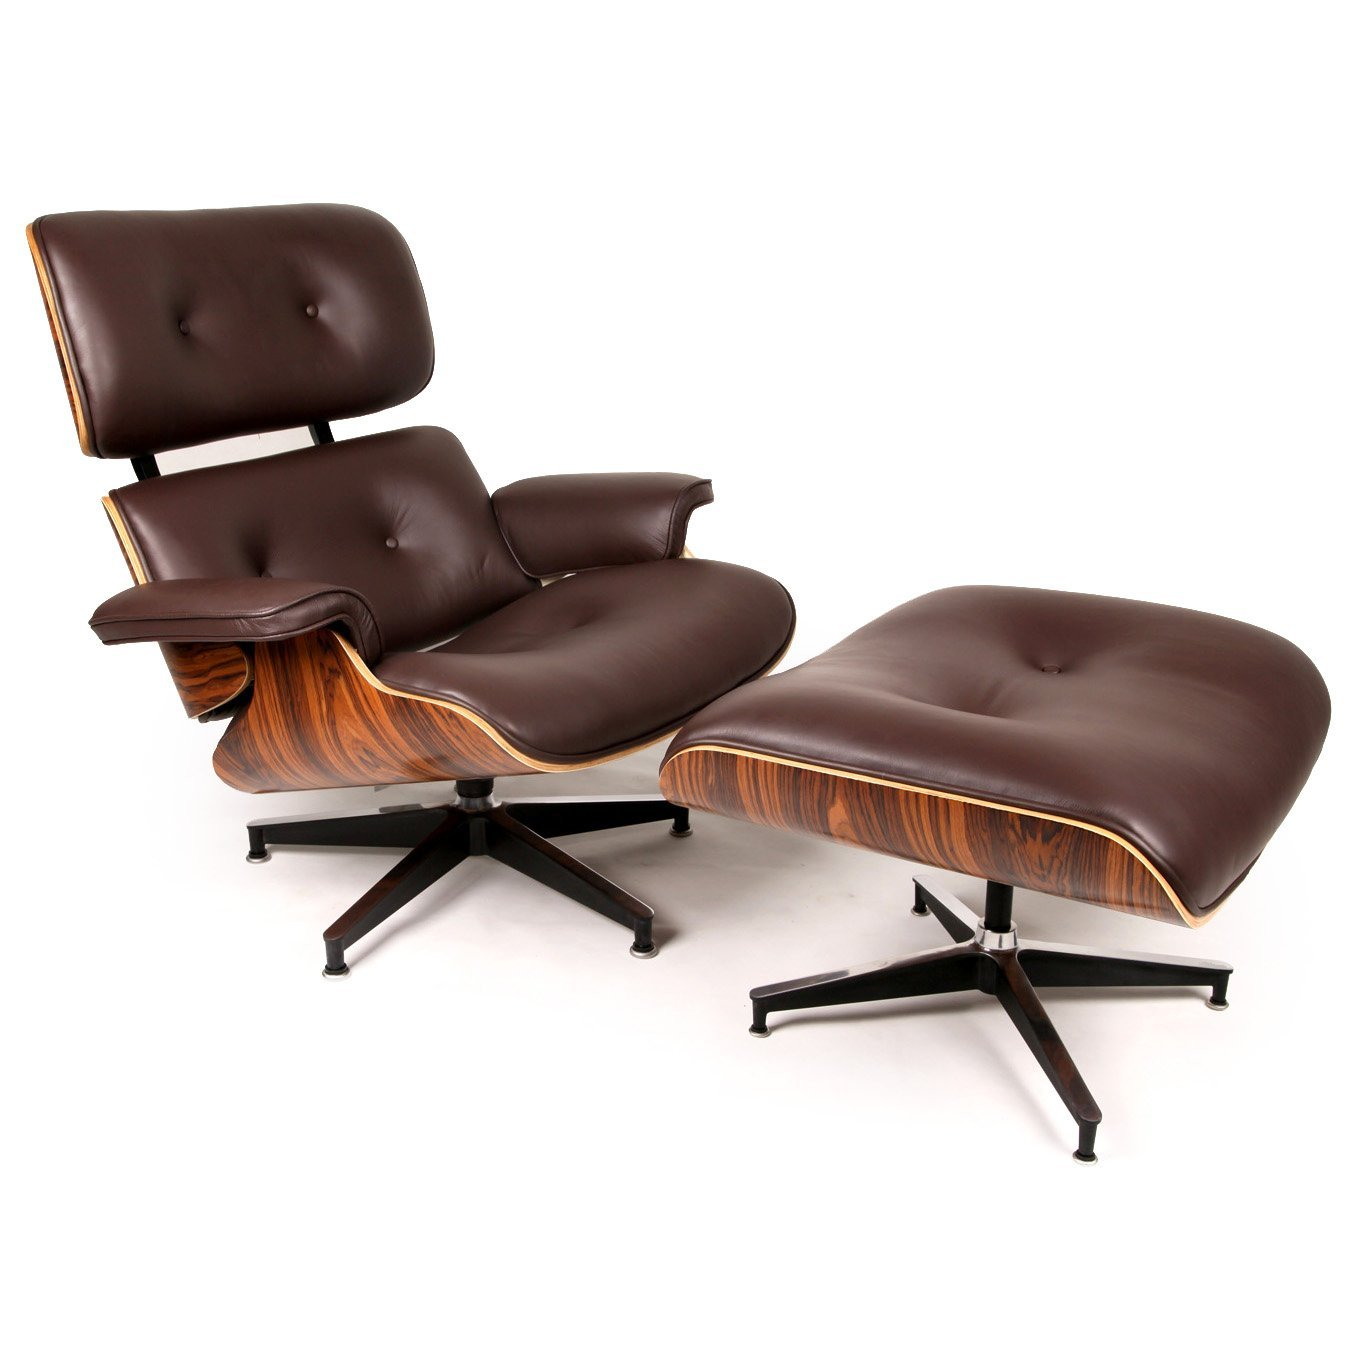 eames chair amazon emeco navy timeless design home